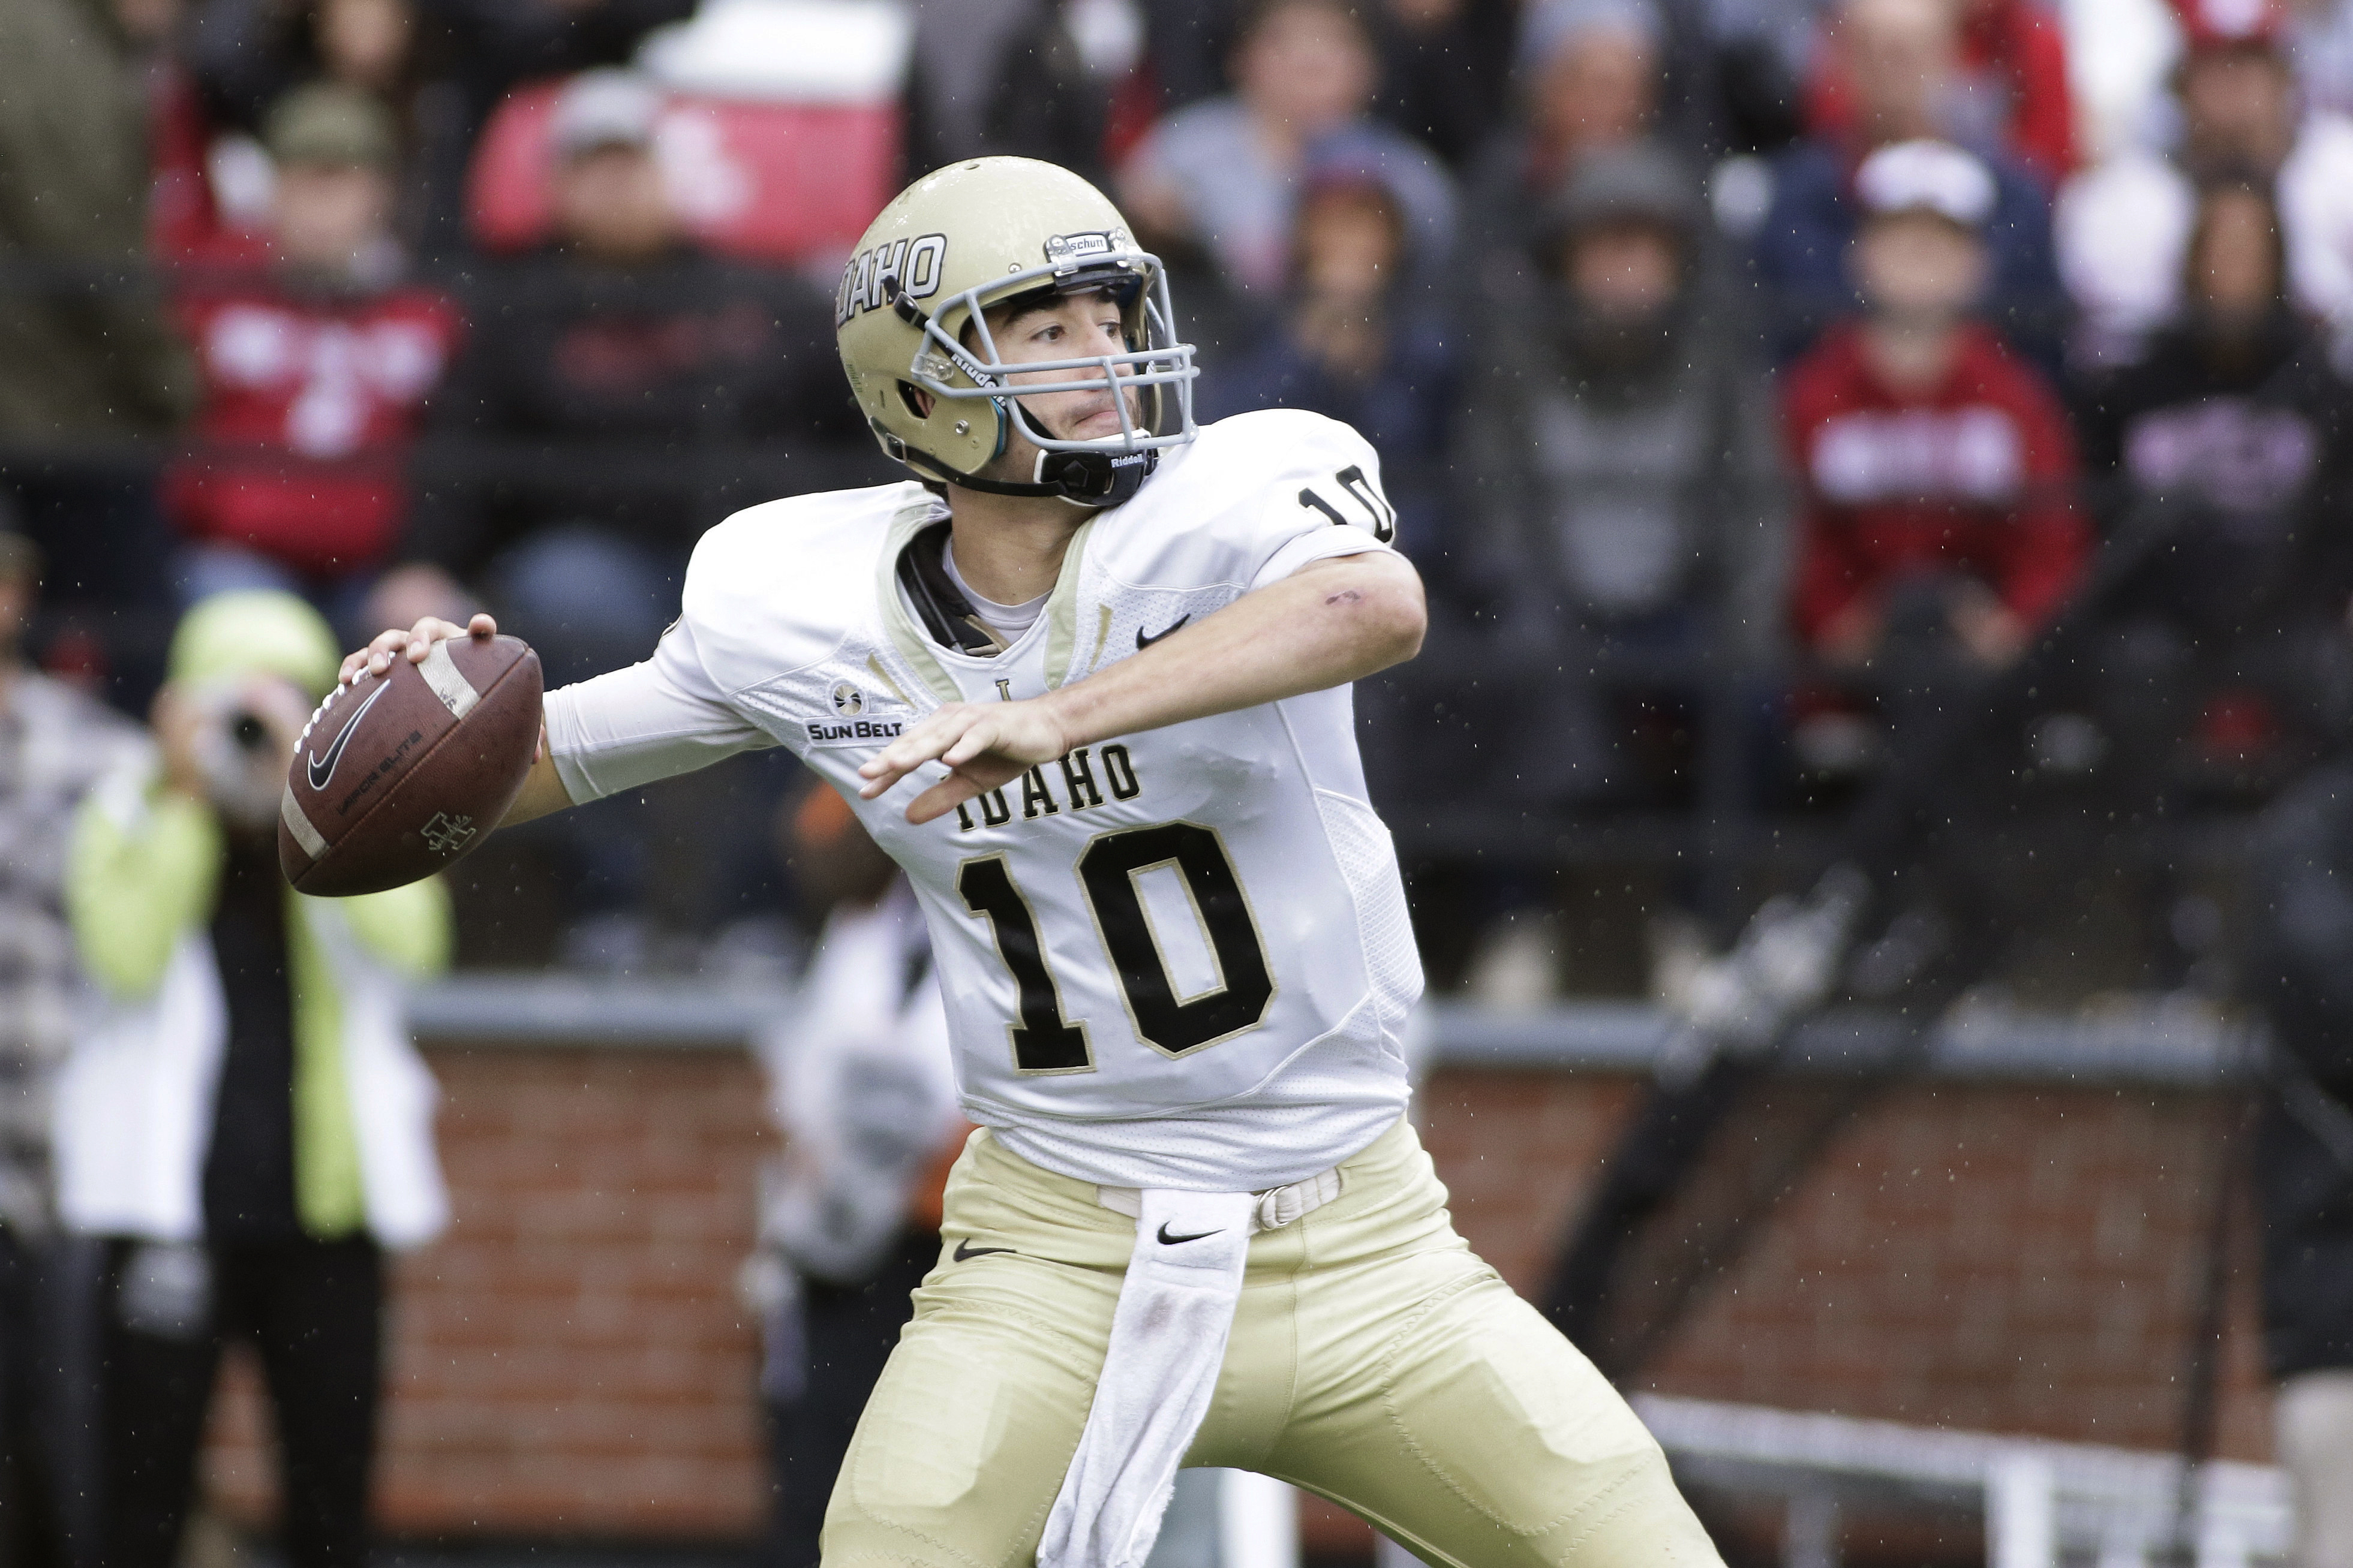 FILE - In this Sept. 17, 2016, file photo, Idaho quarterback Matt Linehan (10) passes the ball during the first half of an NCAA college football game against Washington State, in Pullman, Wash. It's been a rough year for the Idaho football program, but th